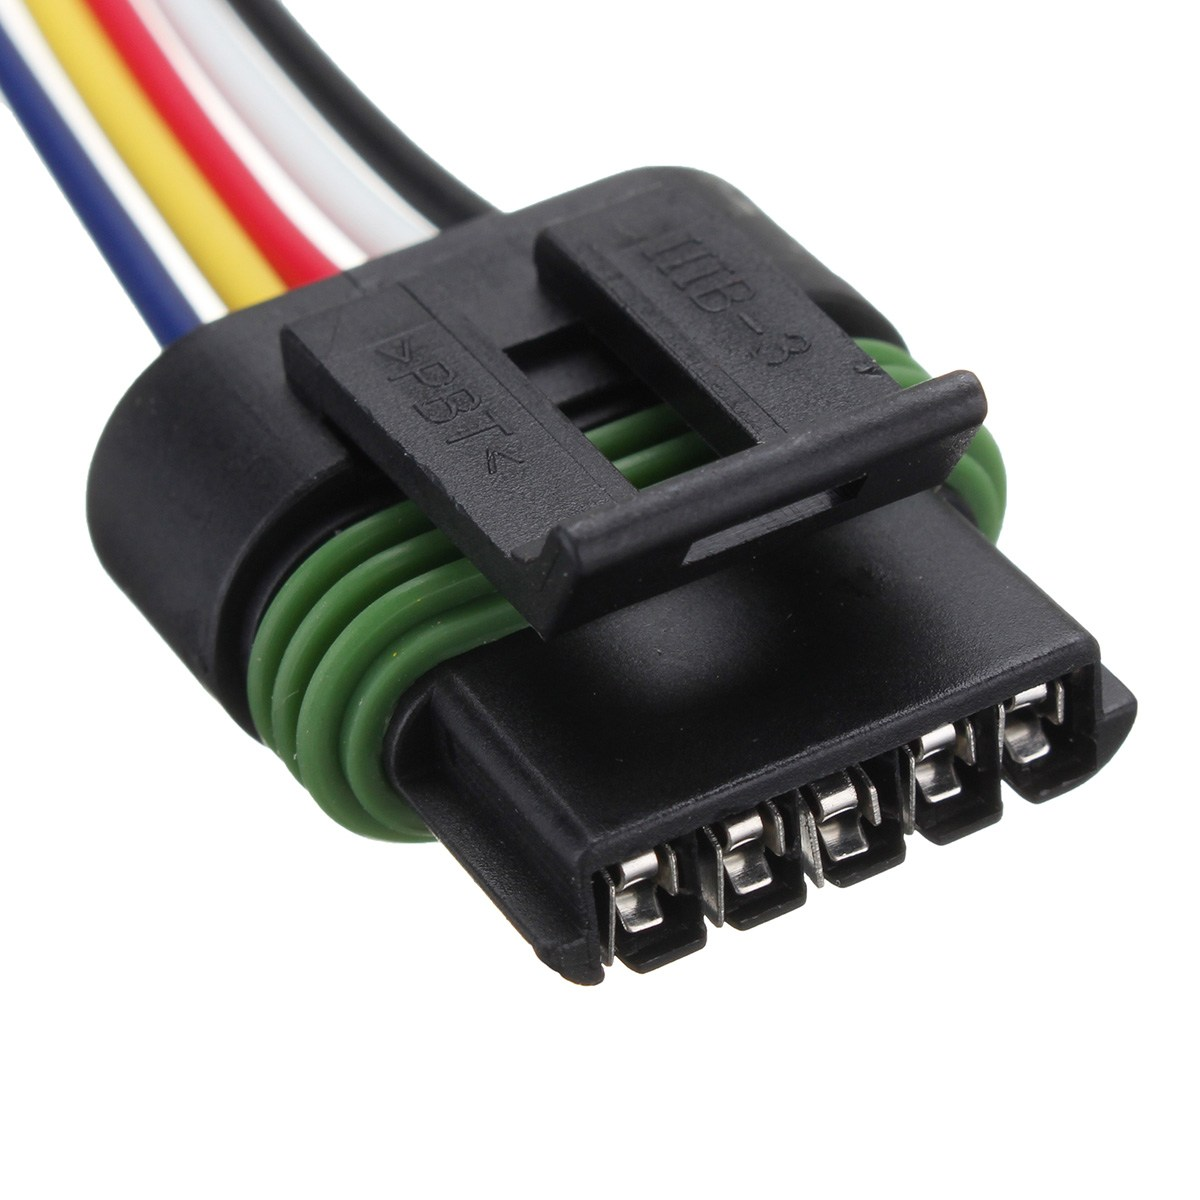 US $1 69 |Ignition Coil Connector Cable Harness For Mercury Optimax 339  879984T00 300 879984T-in Ignition Coil from Automobiles & Motorcycles on